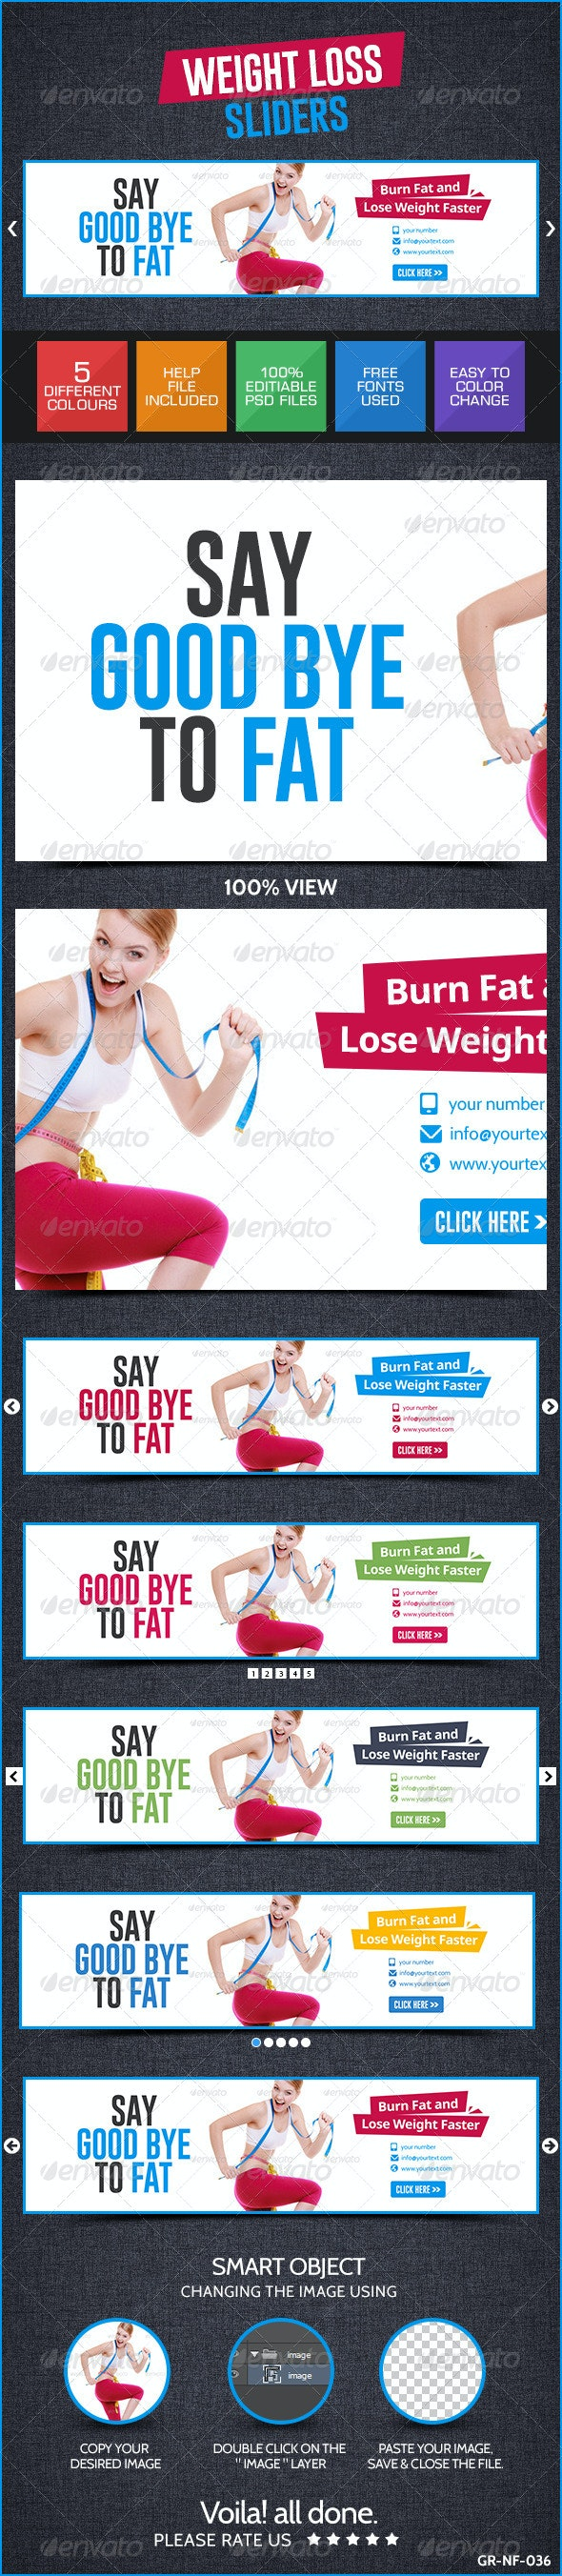 Weight Loss Web Sliders - Sliders & Features Web Elements